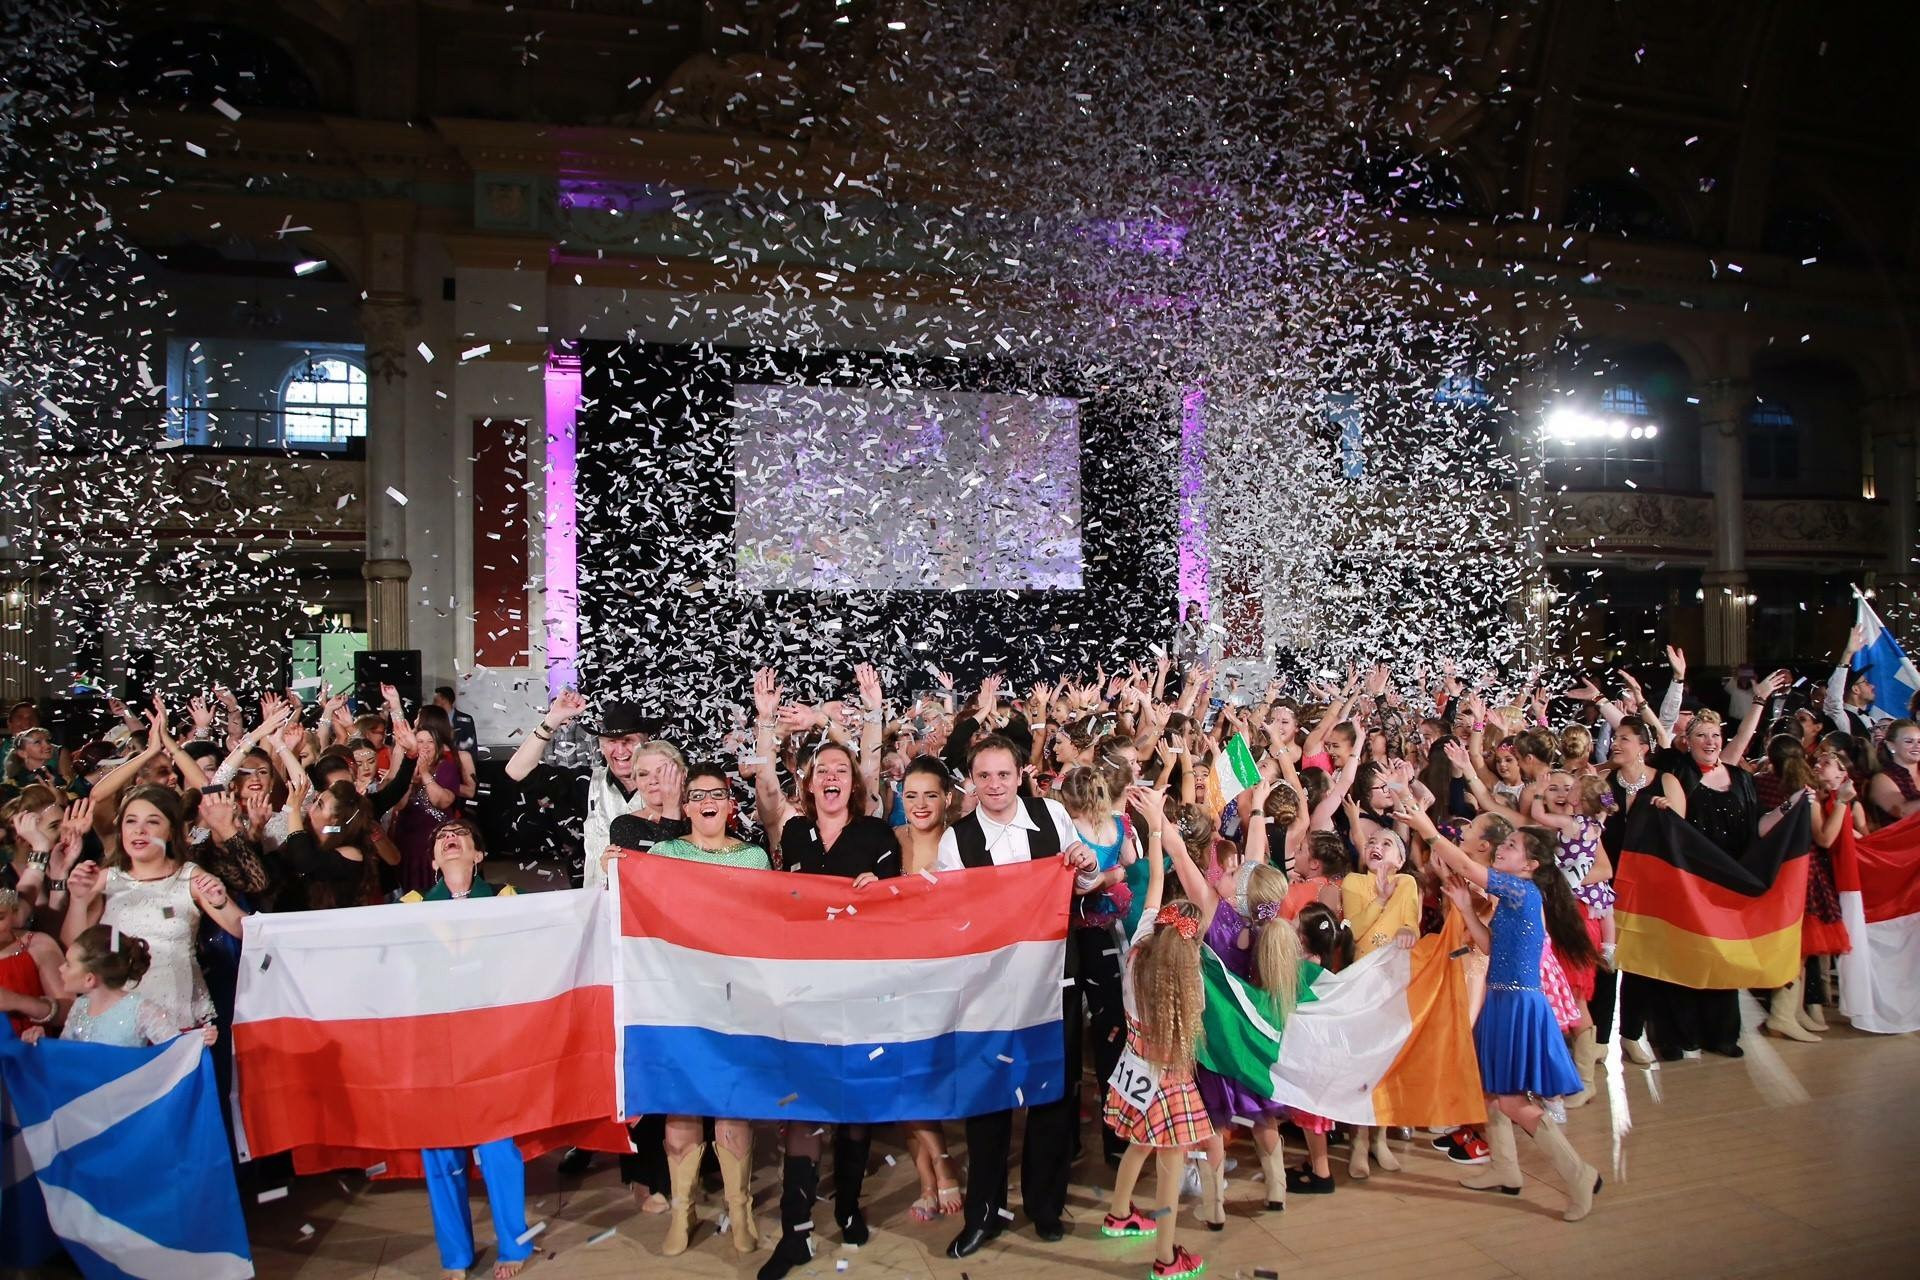 Dancers from 24 Countries Descend on Historical Blackpool Ballroom for World Dance Masters Championships